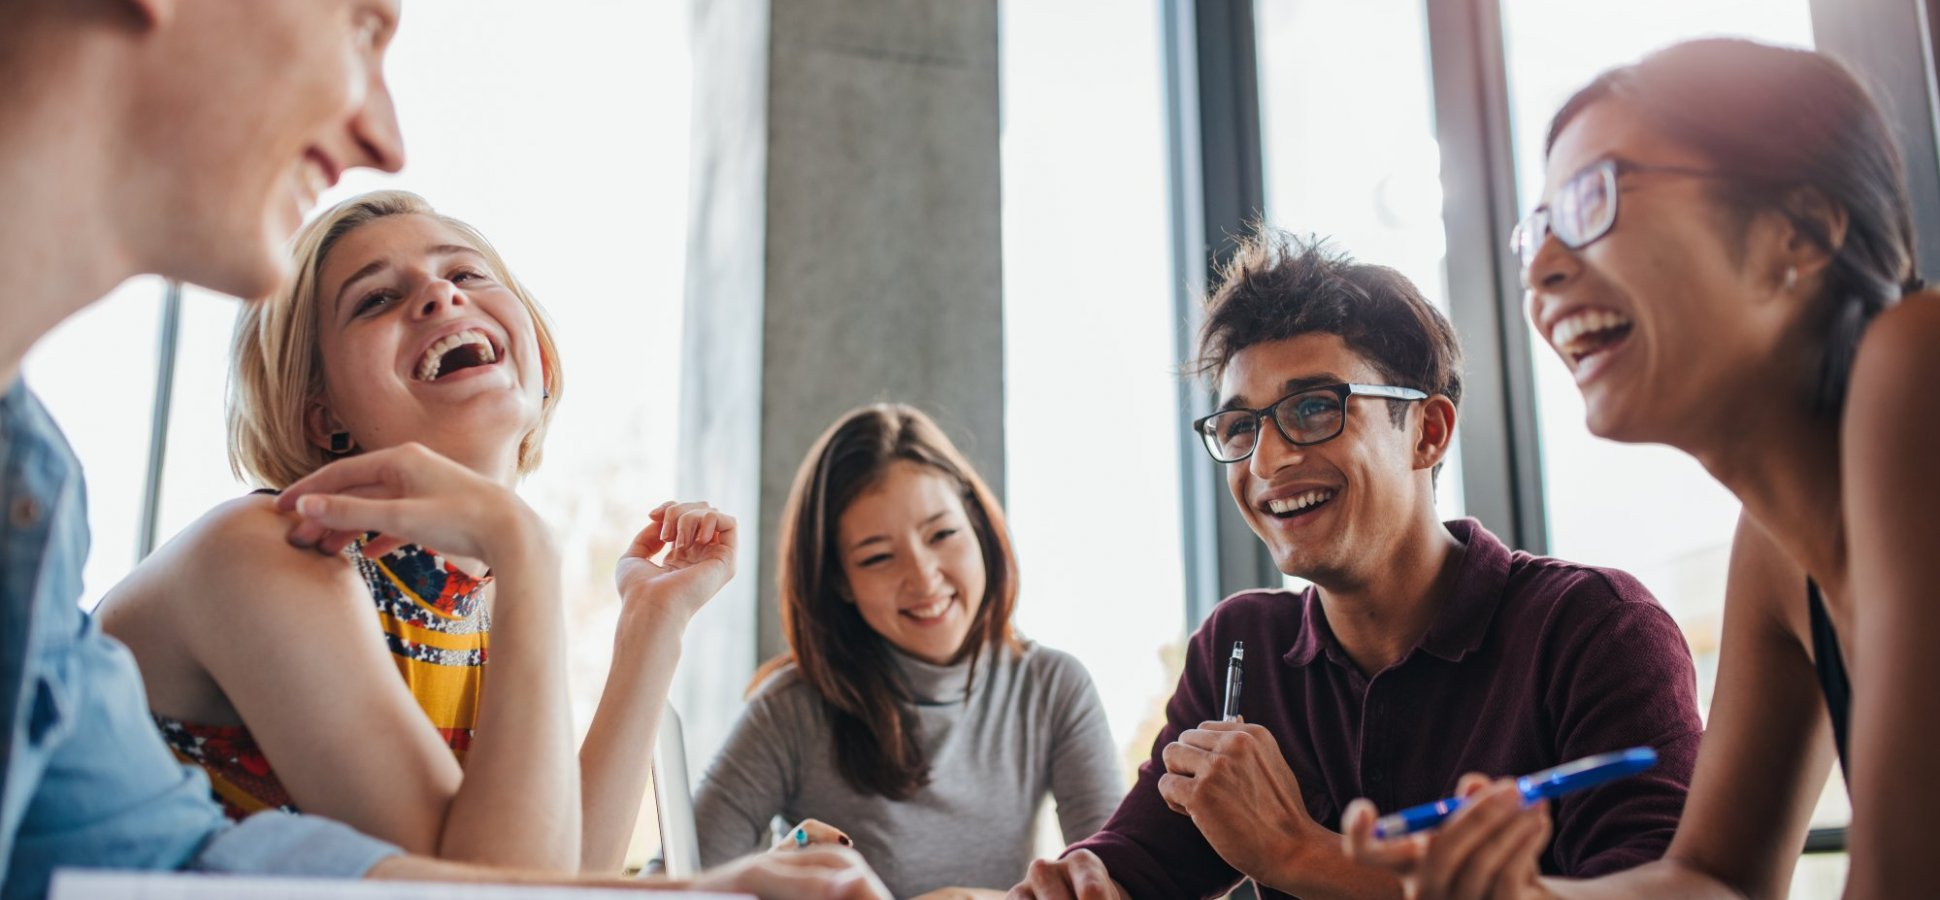 How to Involve Your Team to Improve Your Results